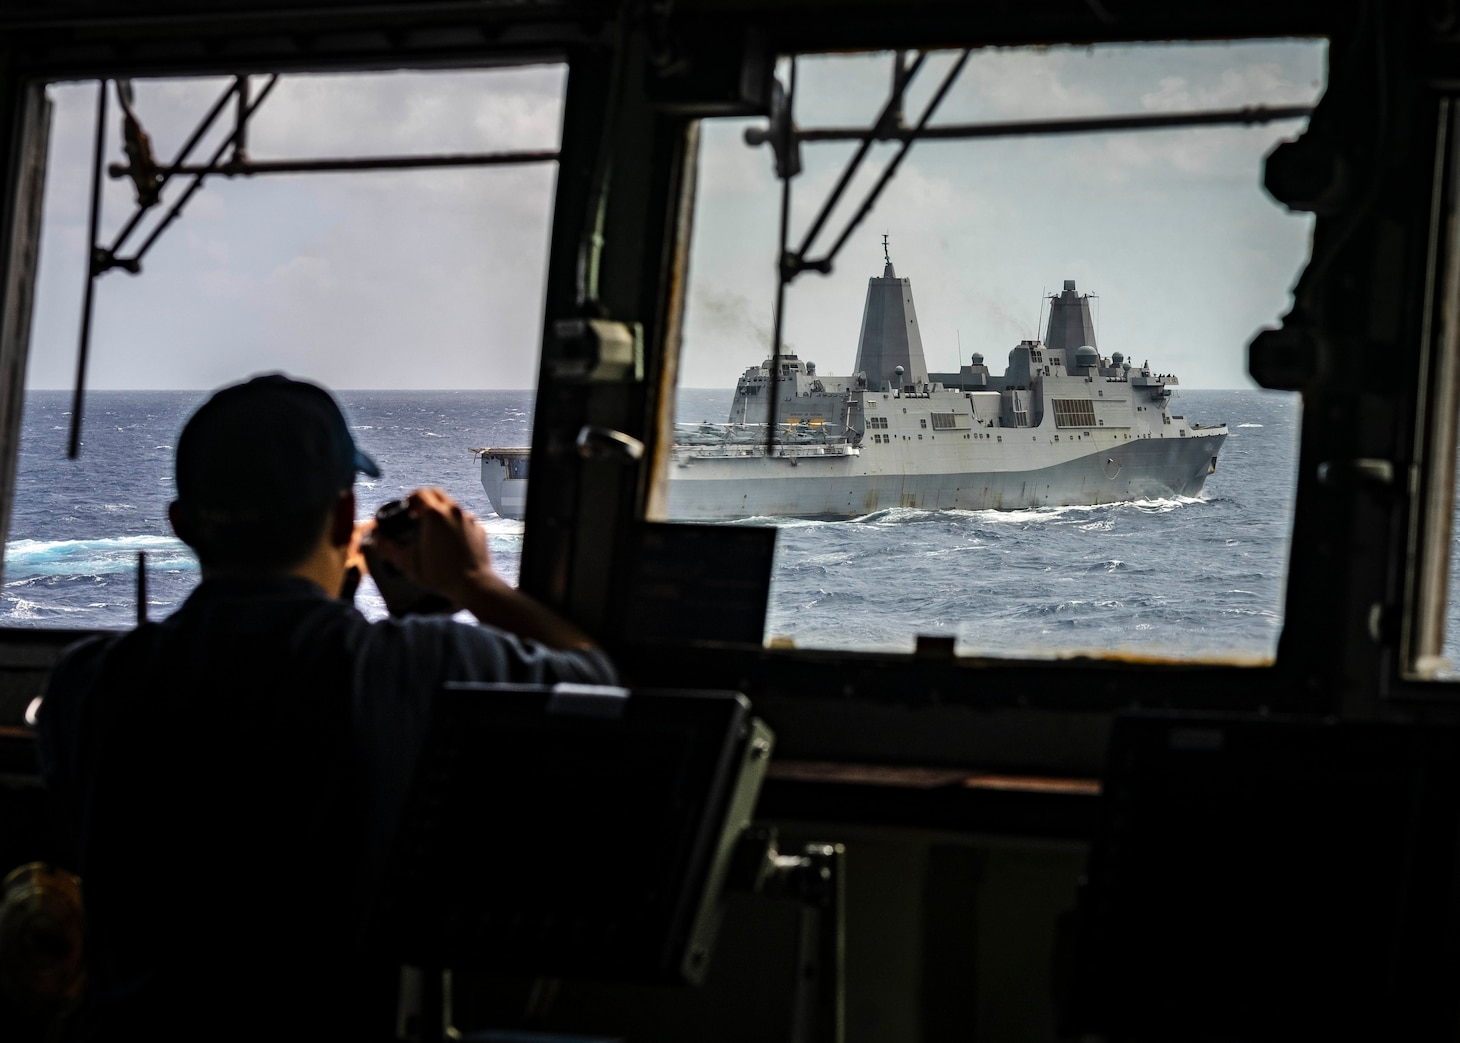 CORAL SEA (August 01, 2019) – The amphibious dock landing ship USS Ashland (LSD 48) sails alongside the amphibious transport dock ship USS Green Bay (LPD 20). Ashland, part of the Wasp Amphibious Ready Group, with embarked 31st Marine Expeditionary Unit, is operating in the Indo-Pacific region to enhance interoperability with partners and serve as a ready-response force for any type of contingency.